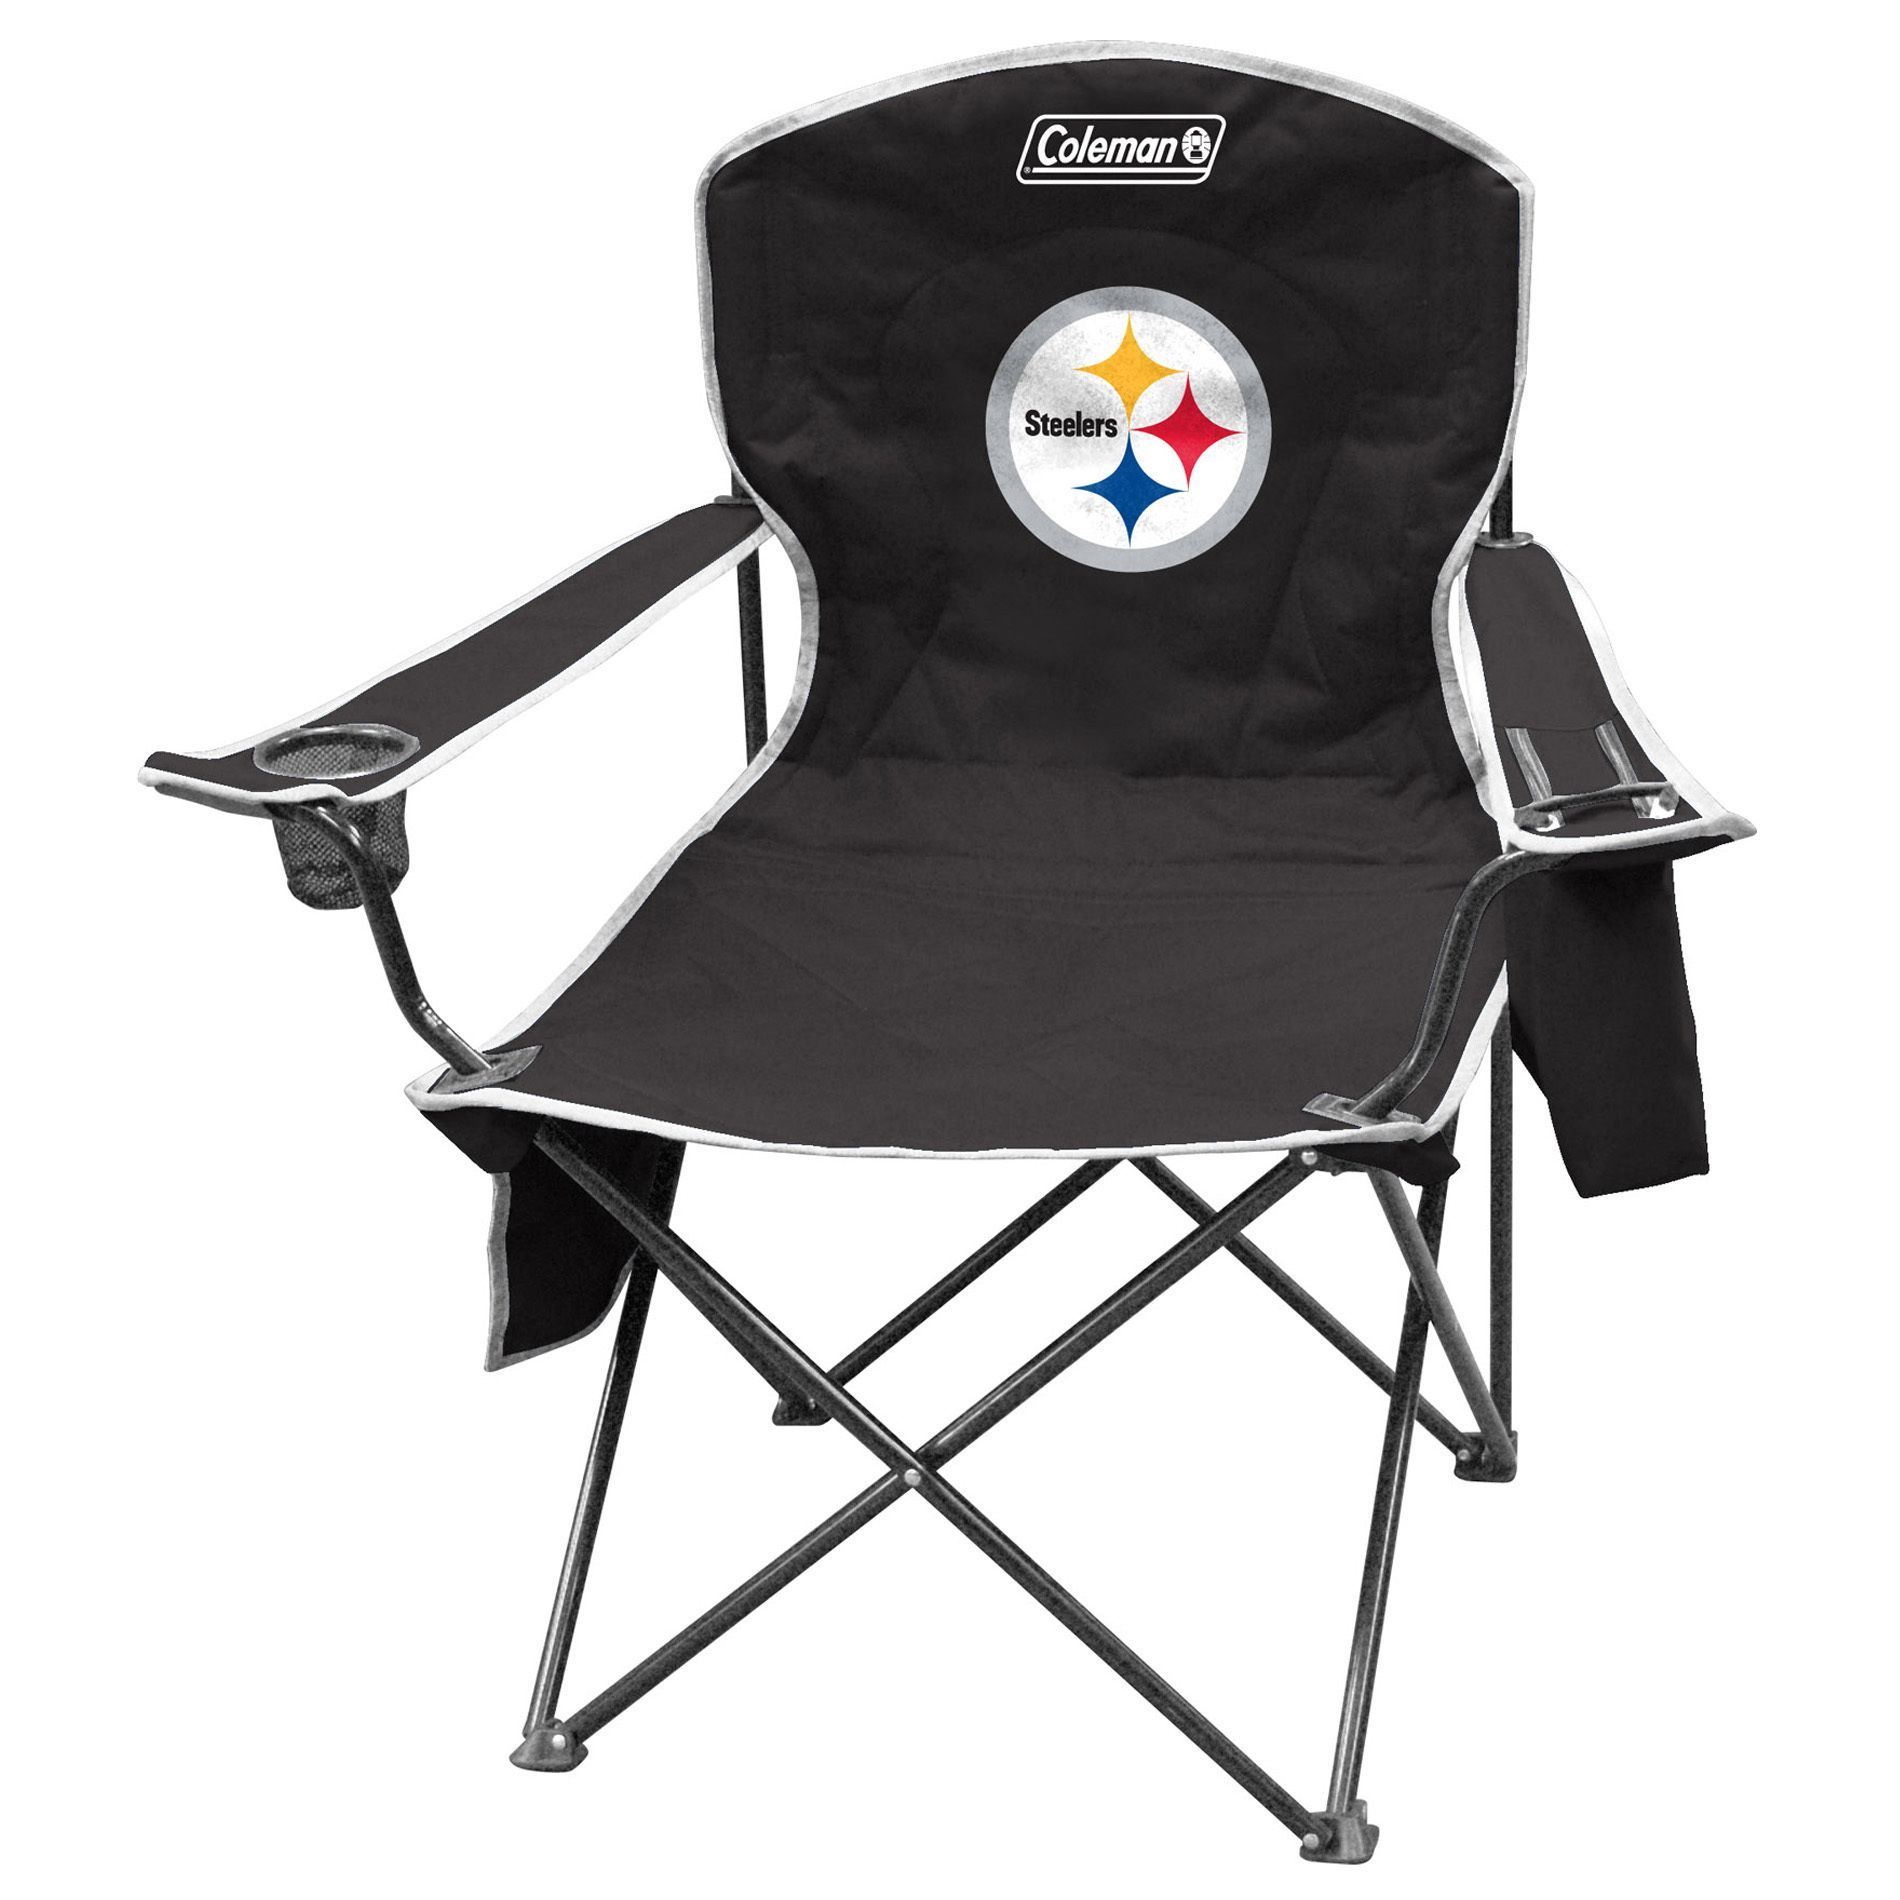 pare Chicago Bears Folding Chair prices and save big on Bears Folding Chairs and Chicago Bears Tailgating Gear by scanning prices from top retailers